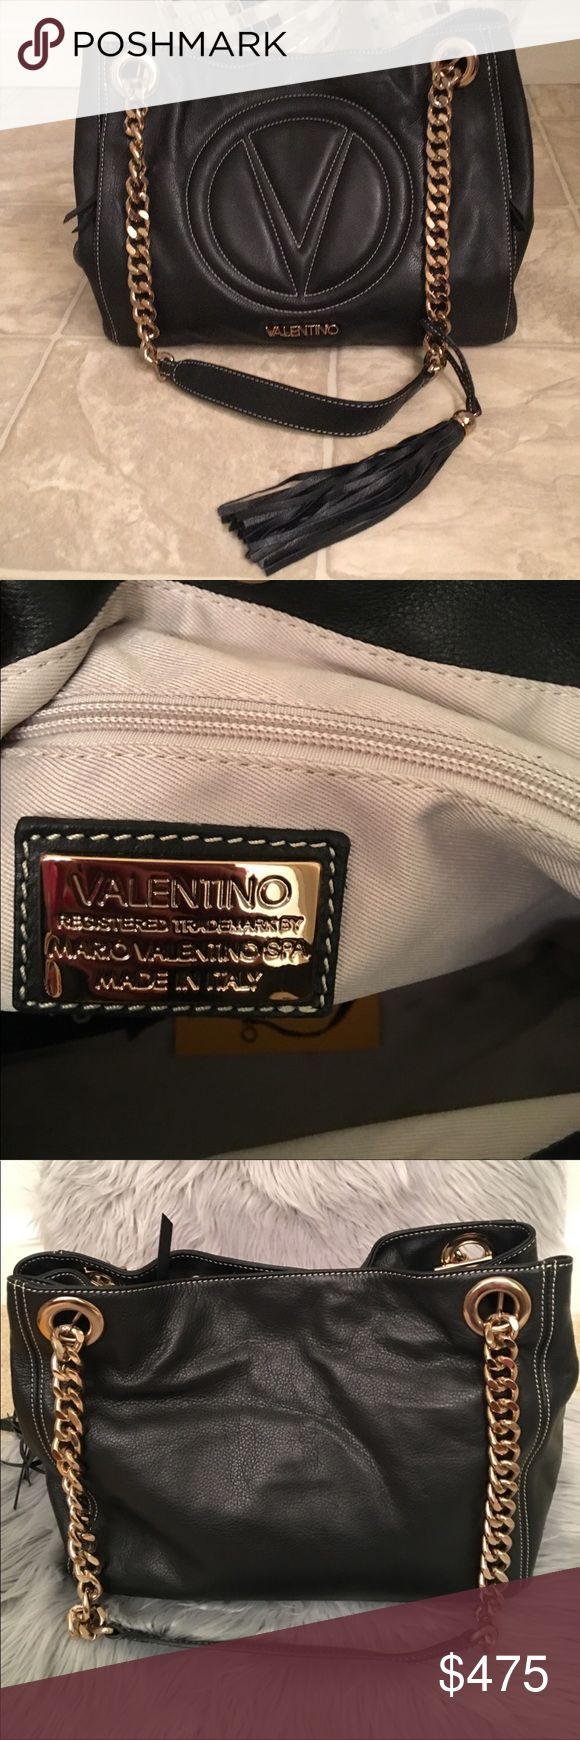 VALENTINO LUISA 2 VALENTINO MARIO LUISA 2 in like new gorgeous condition. Black leather. Stunning for the Holidays 🎅🏻🎁🌲☃️🎉🍾🥂 Valentino Bags